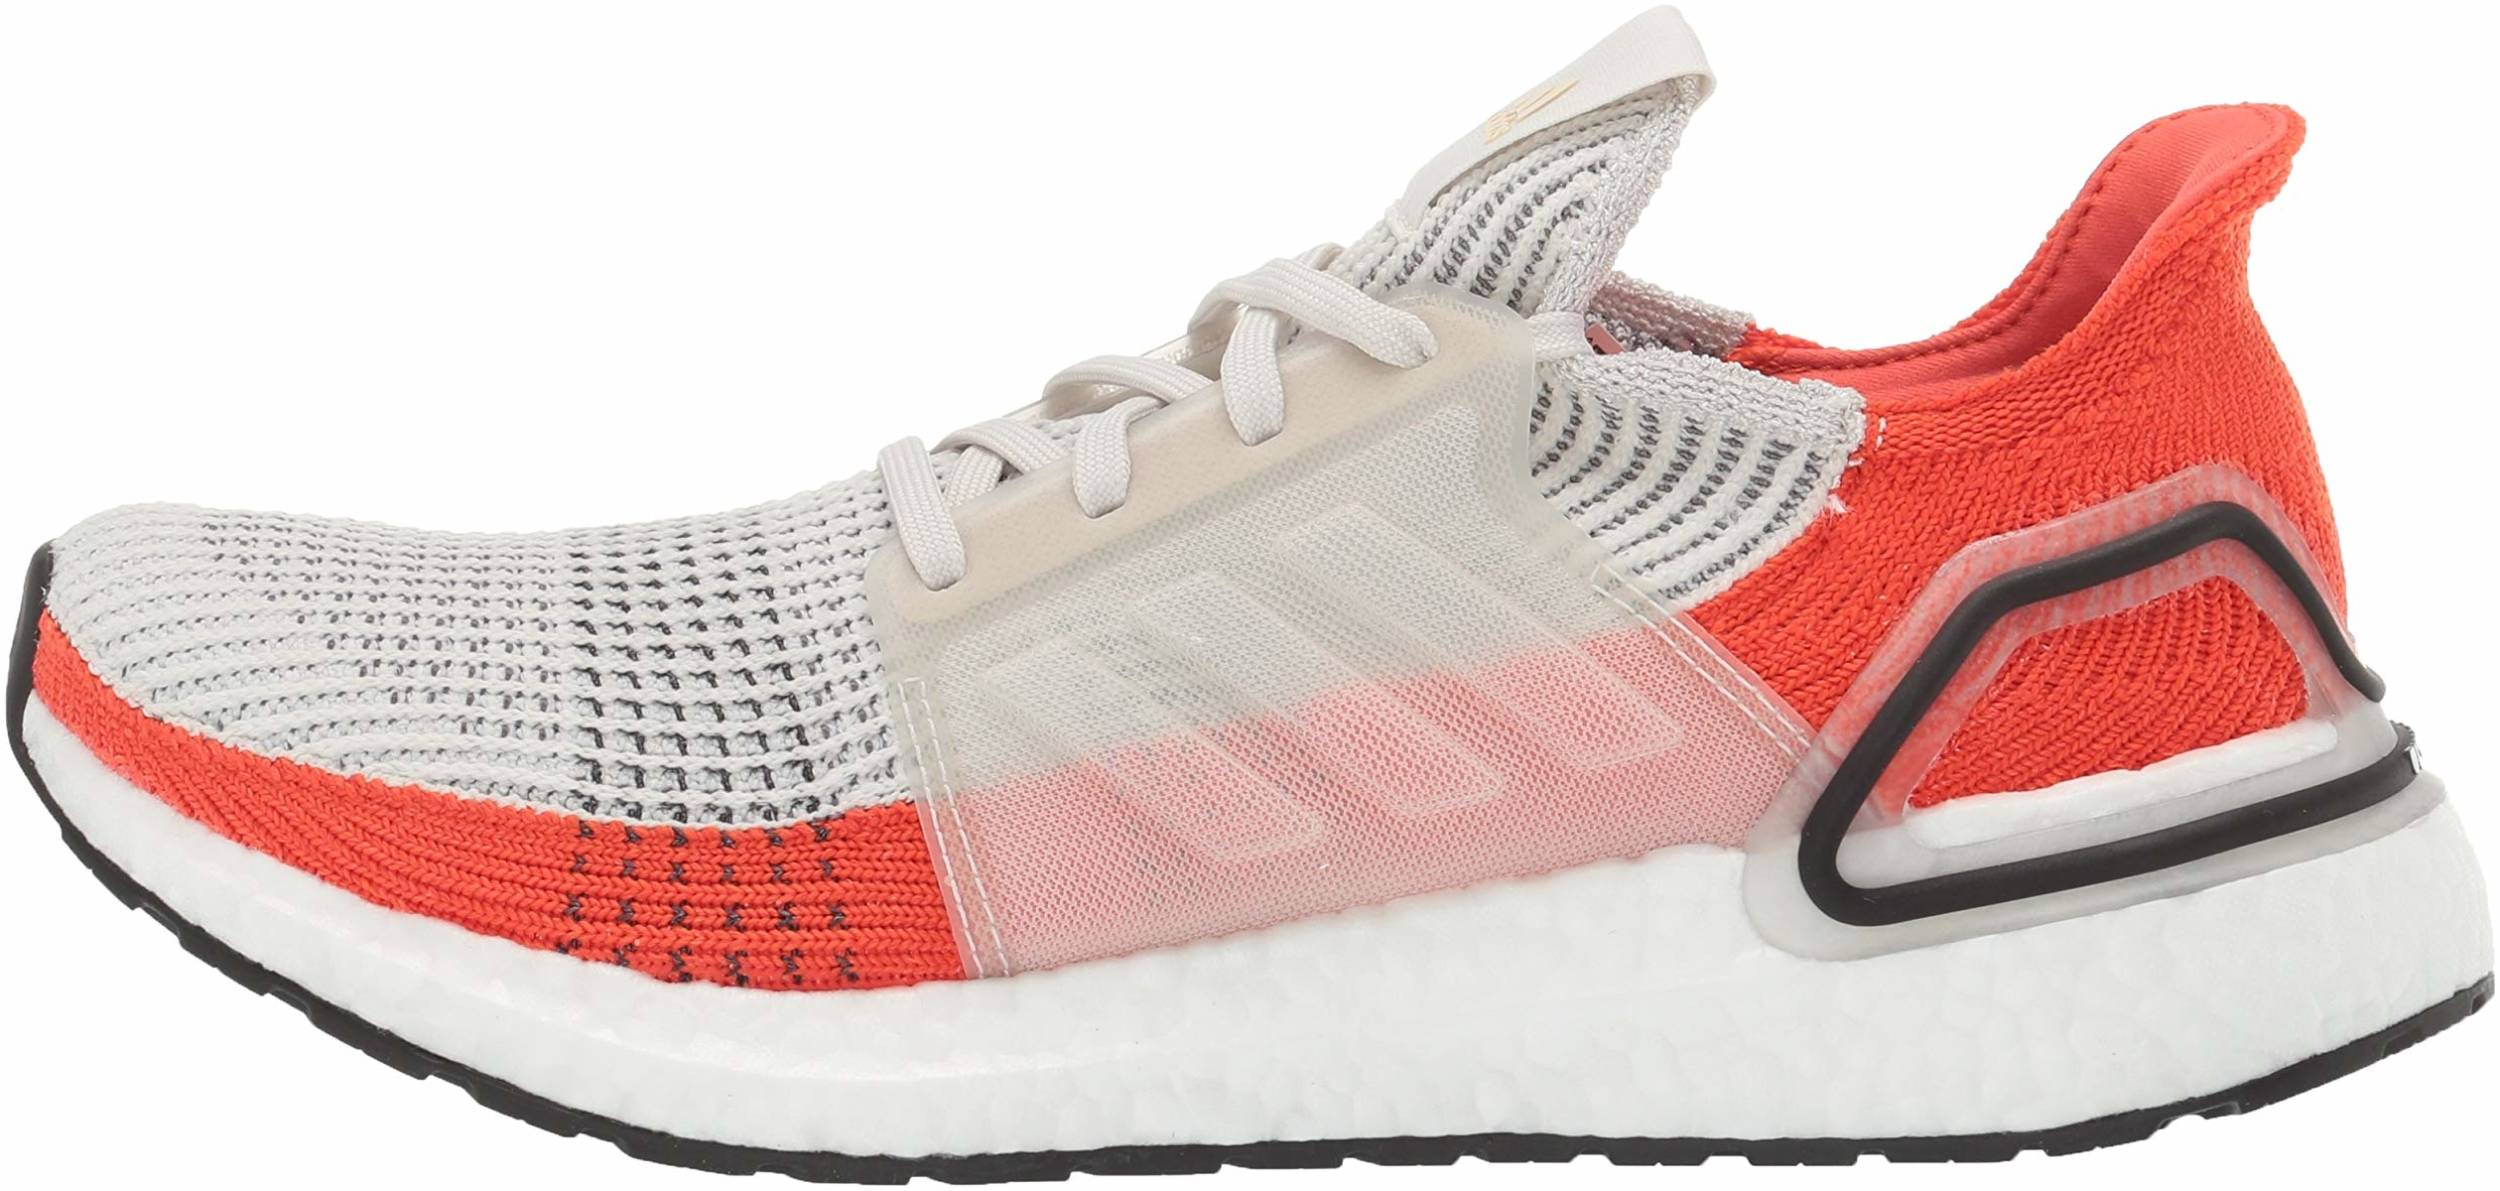 adidas ultra boost 19 true to size